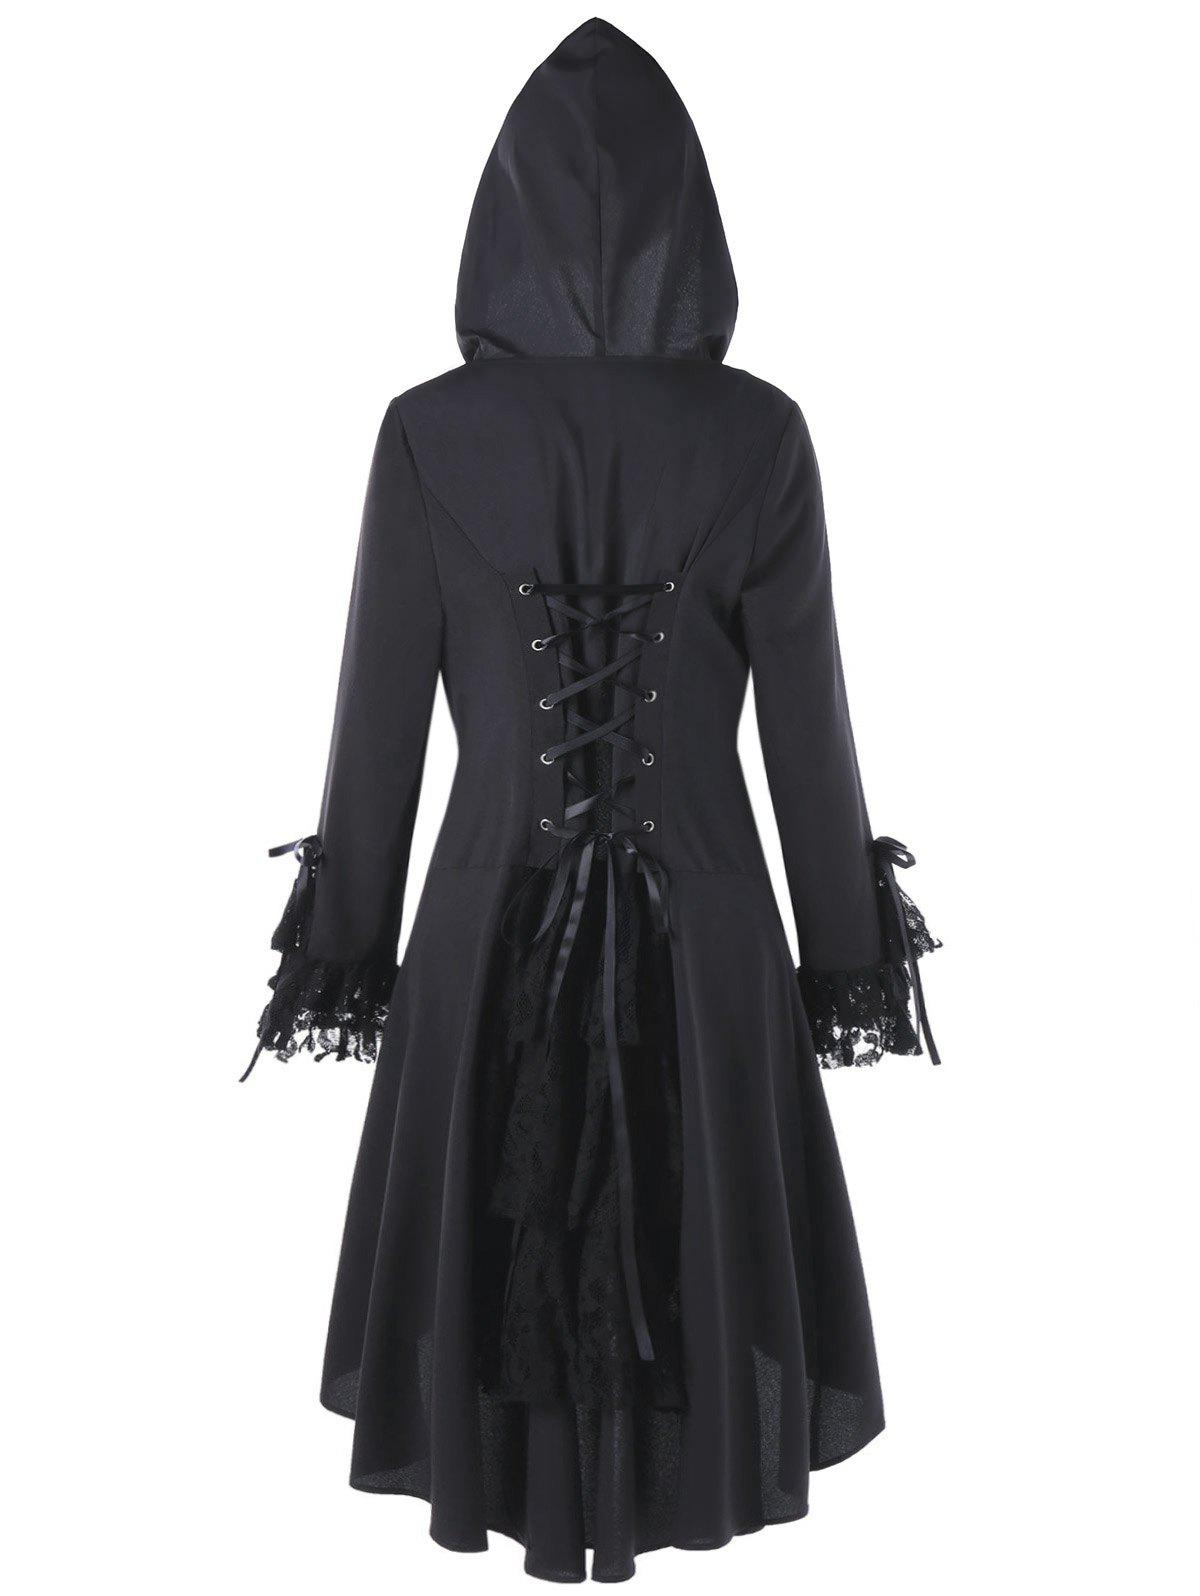 Plus Size Hooded High Low Lace Panel Lace Up CoatWOMEN<br><br>Size: 4XL; Color: BLACK; Clothes Type: Others; Material: Cotton,Polyester; Type: Asymmetric Length; Shirt Length: Long; Sleeve Length: Full; Collar: Hooded; Closure Type: Single Breasted; Pattern Type: Others; Embellishment: Criss-Cross,Lace,Panel; Style: Fashion; Season: Winter; With Belt: No; Weight: 0.4700kg; Package Contents: 1 x Coat;